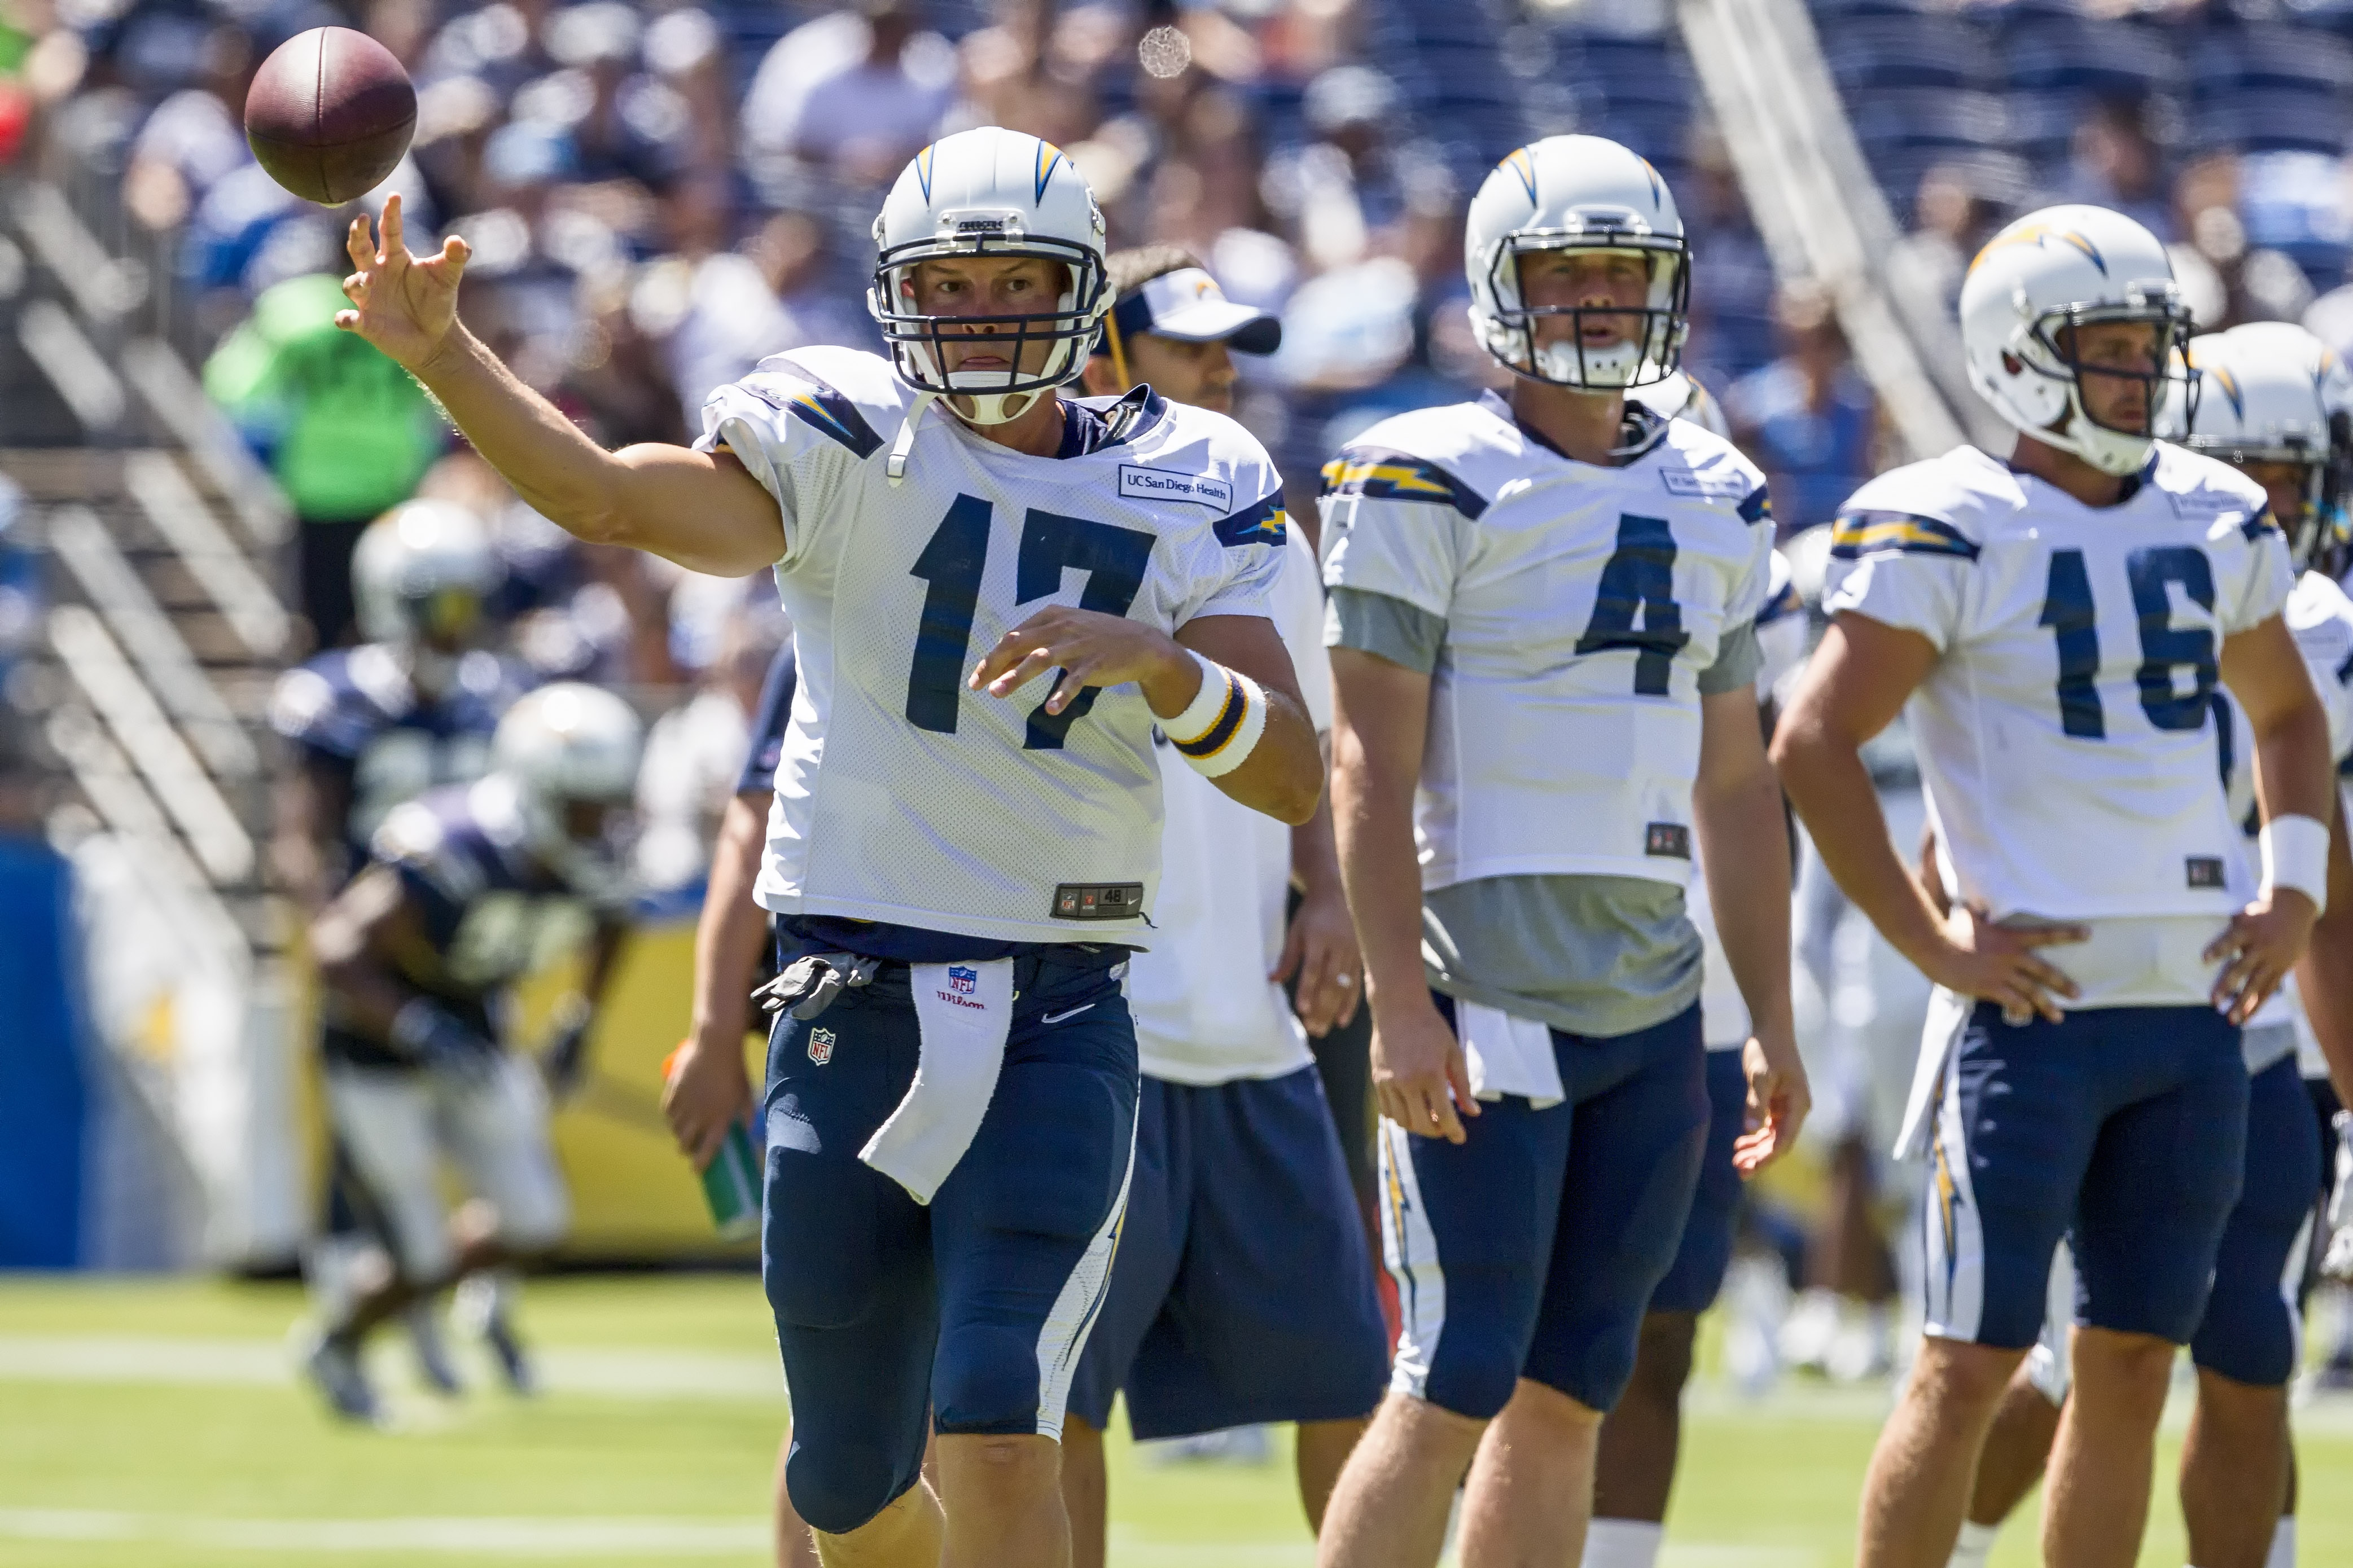 San Diego Chargers quarterback Philip Rivers (17) throws a pass downfield while backup quarterbacks Brad Sorensen (4) and Chase Rettig (16) observe during Fan Fest 2015. Photo by Bill Reilly